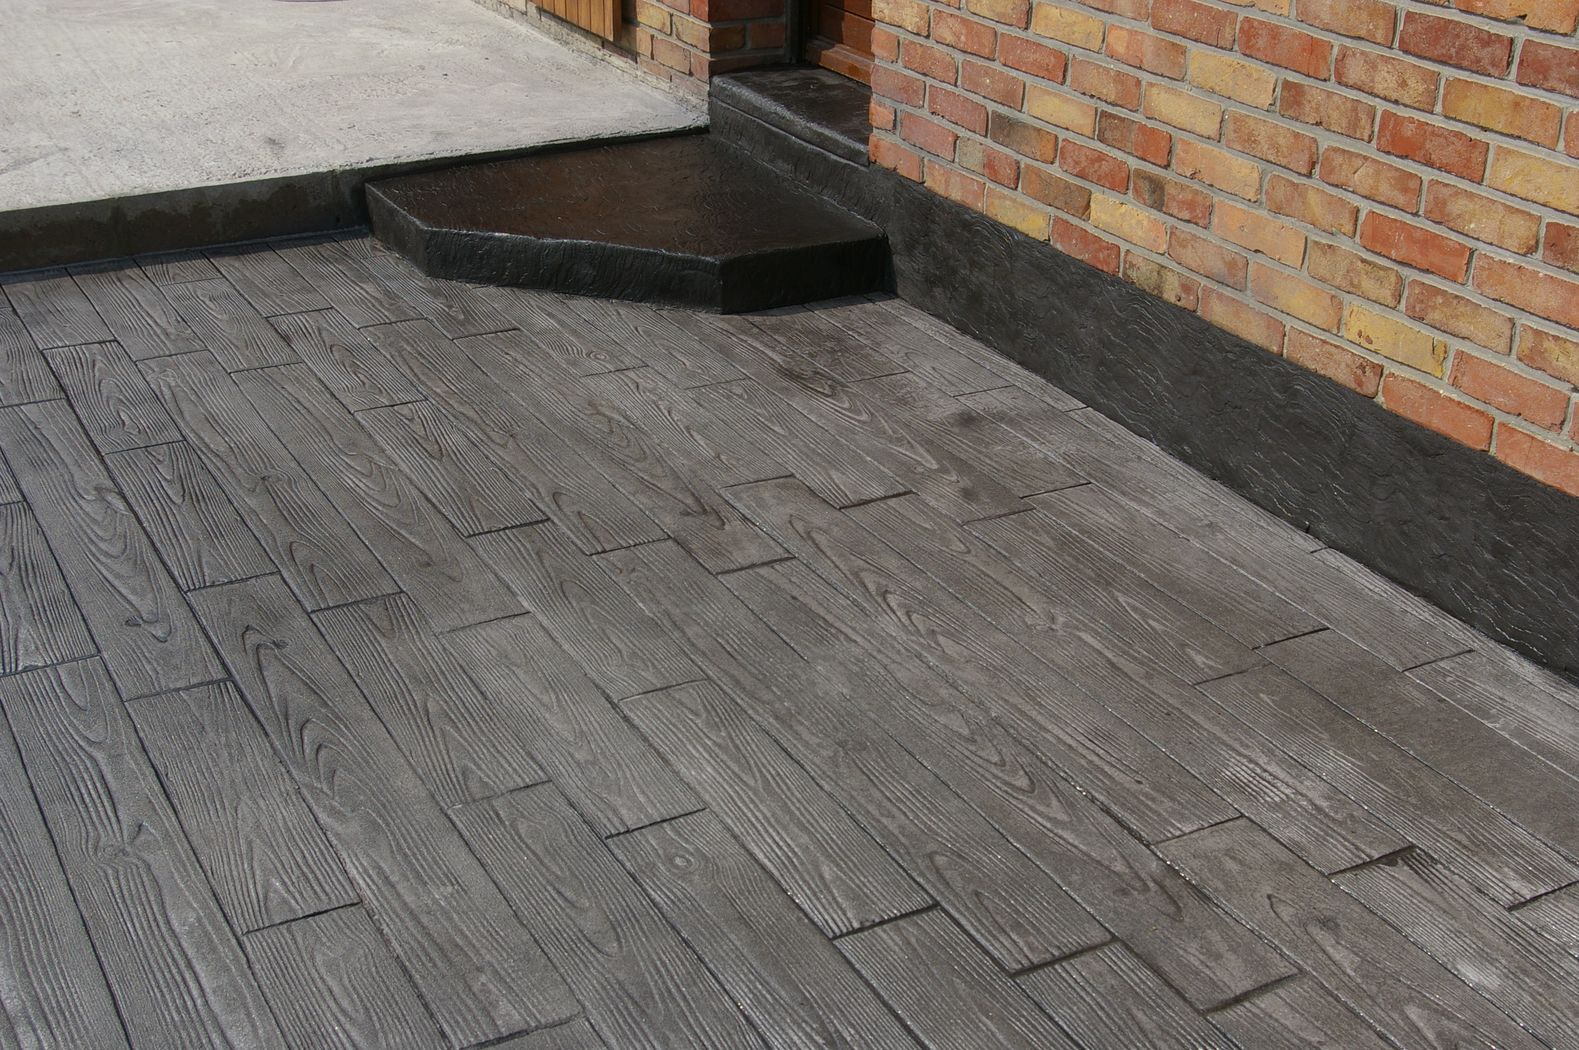 Cout Terrasse Beton Cire Terrasse Beton Imitation Bois Tarif Reconquetefrancaise Fr